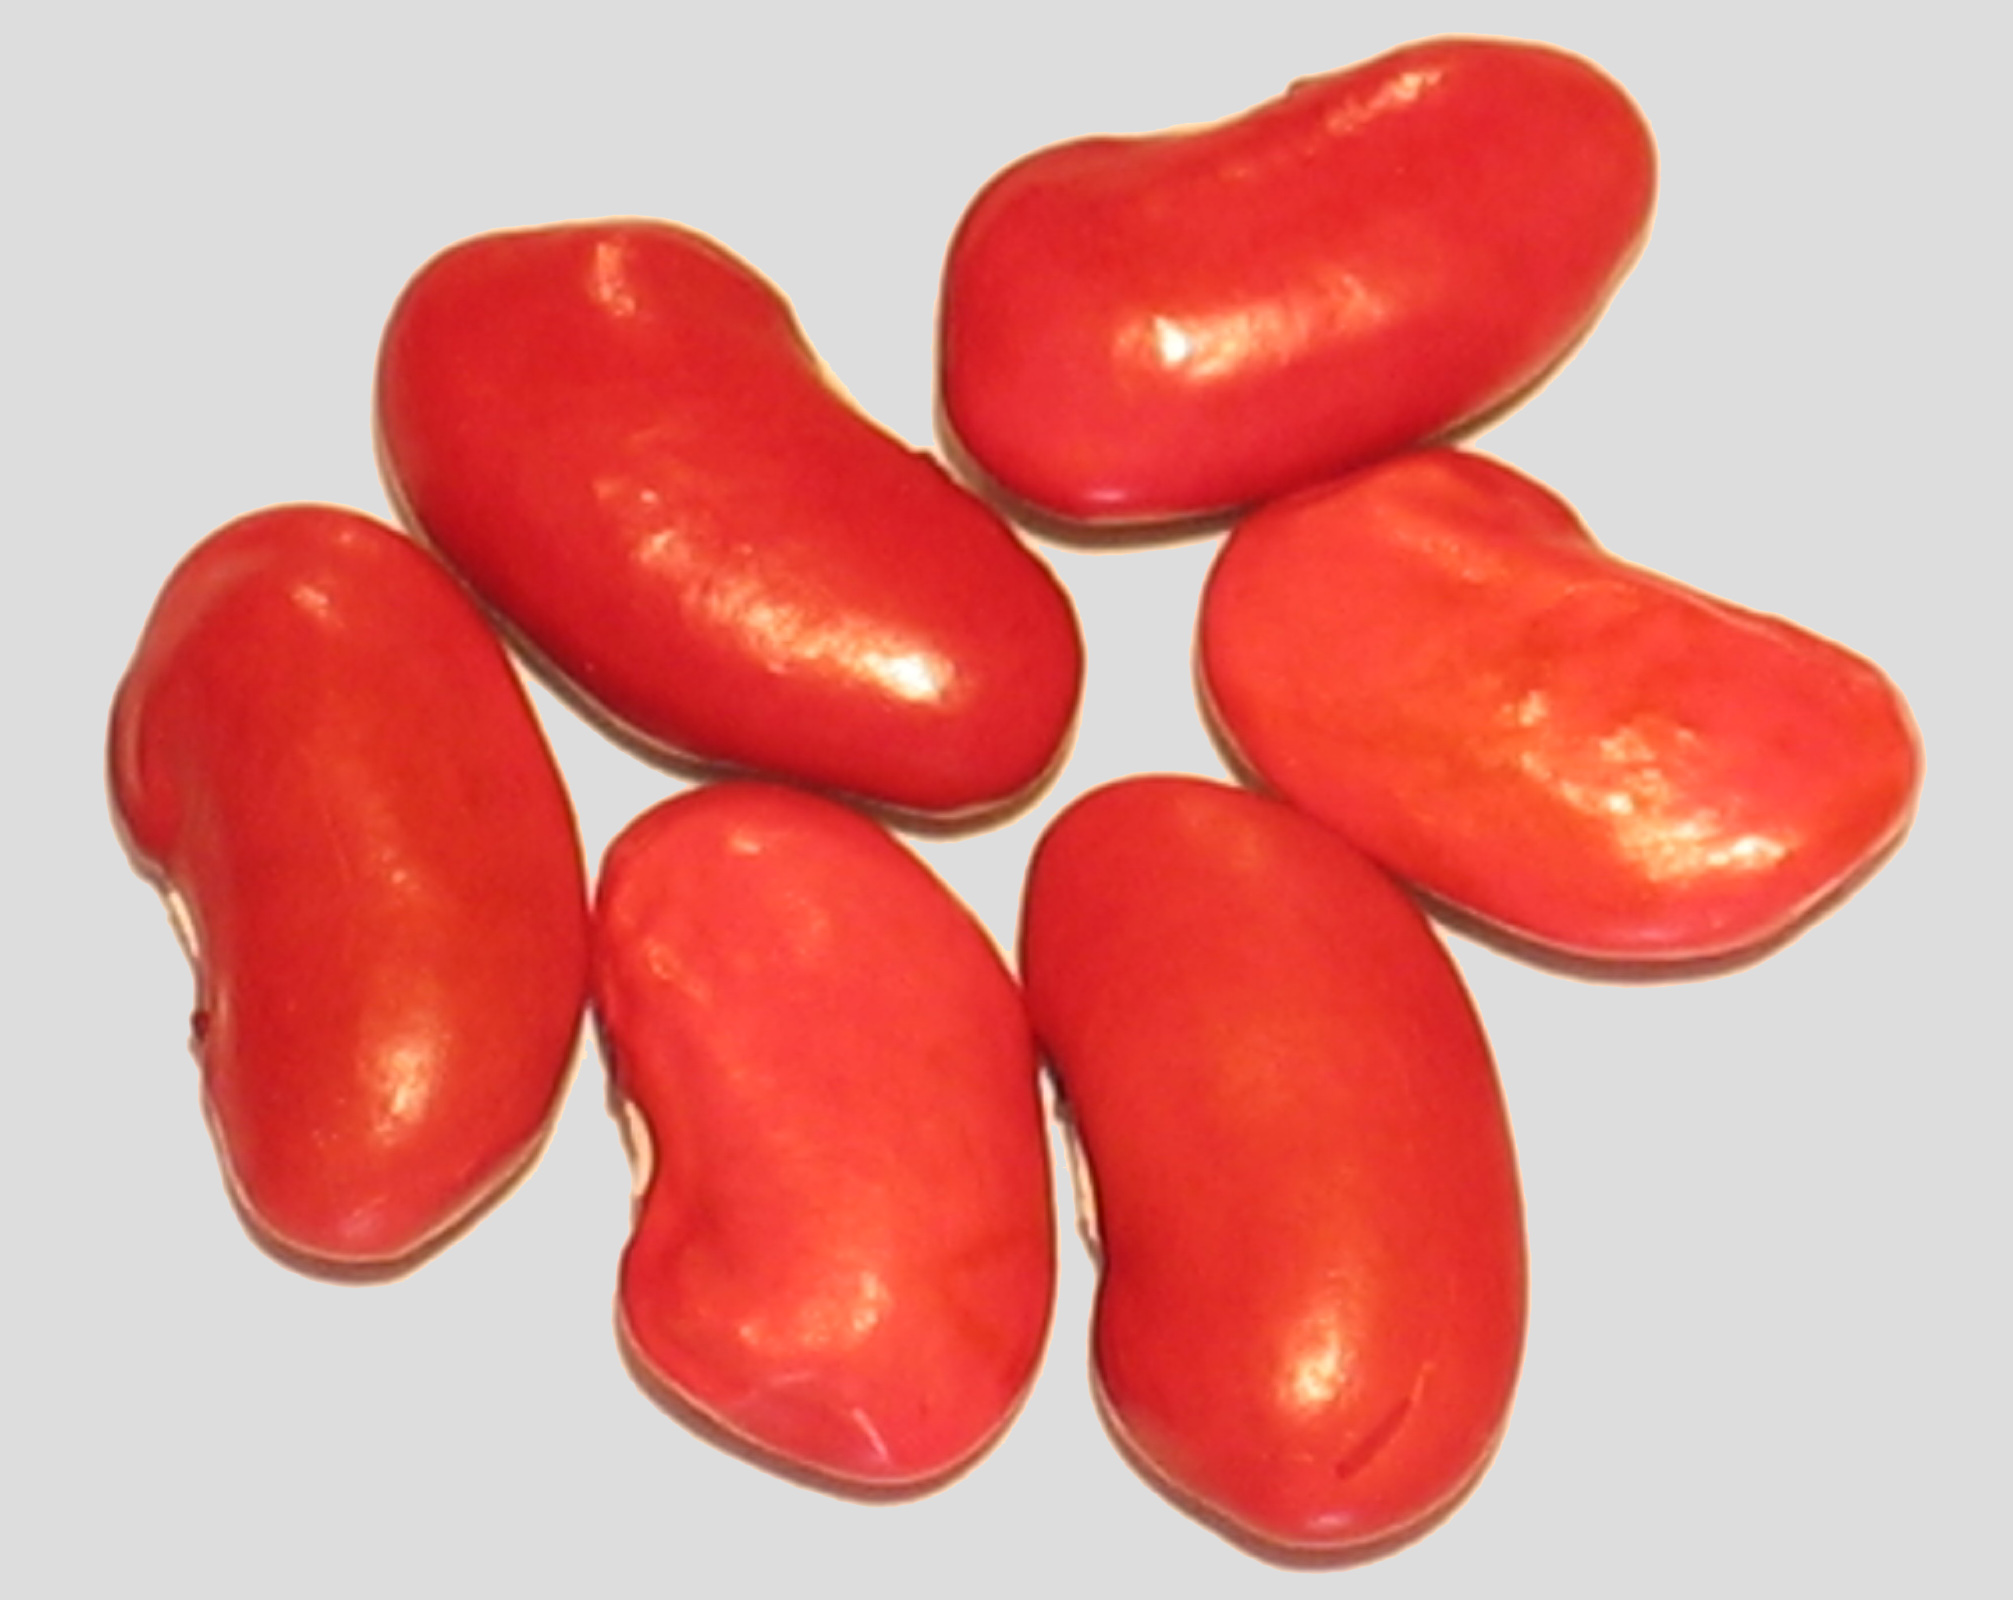 image of Burgundy Kidney beans